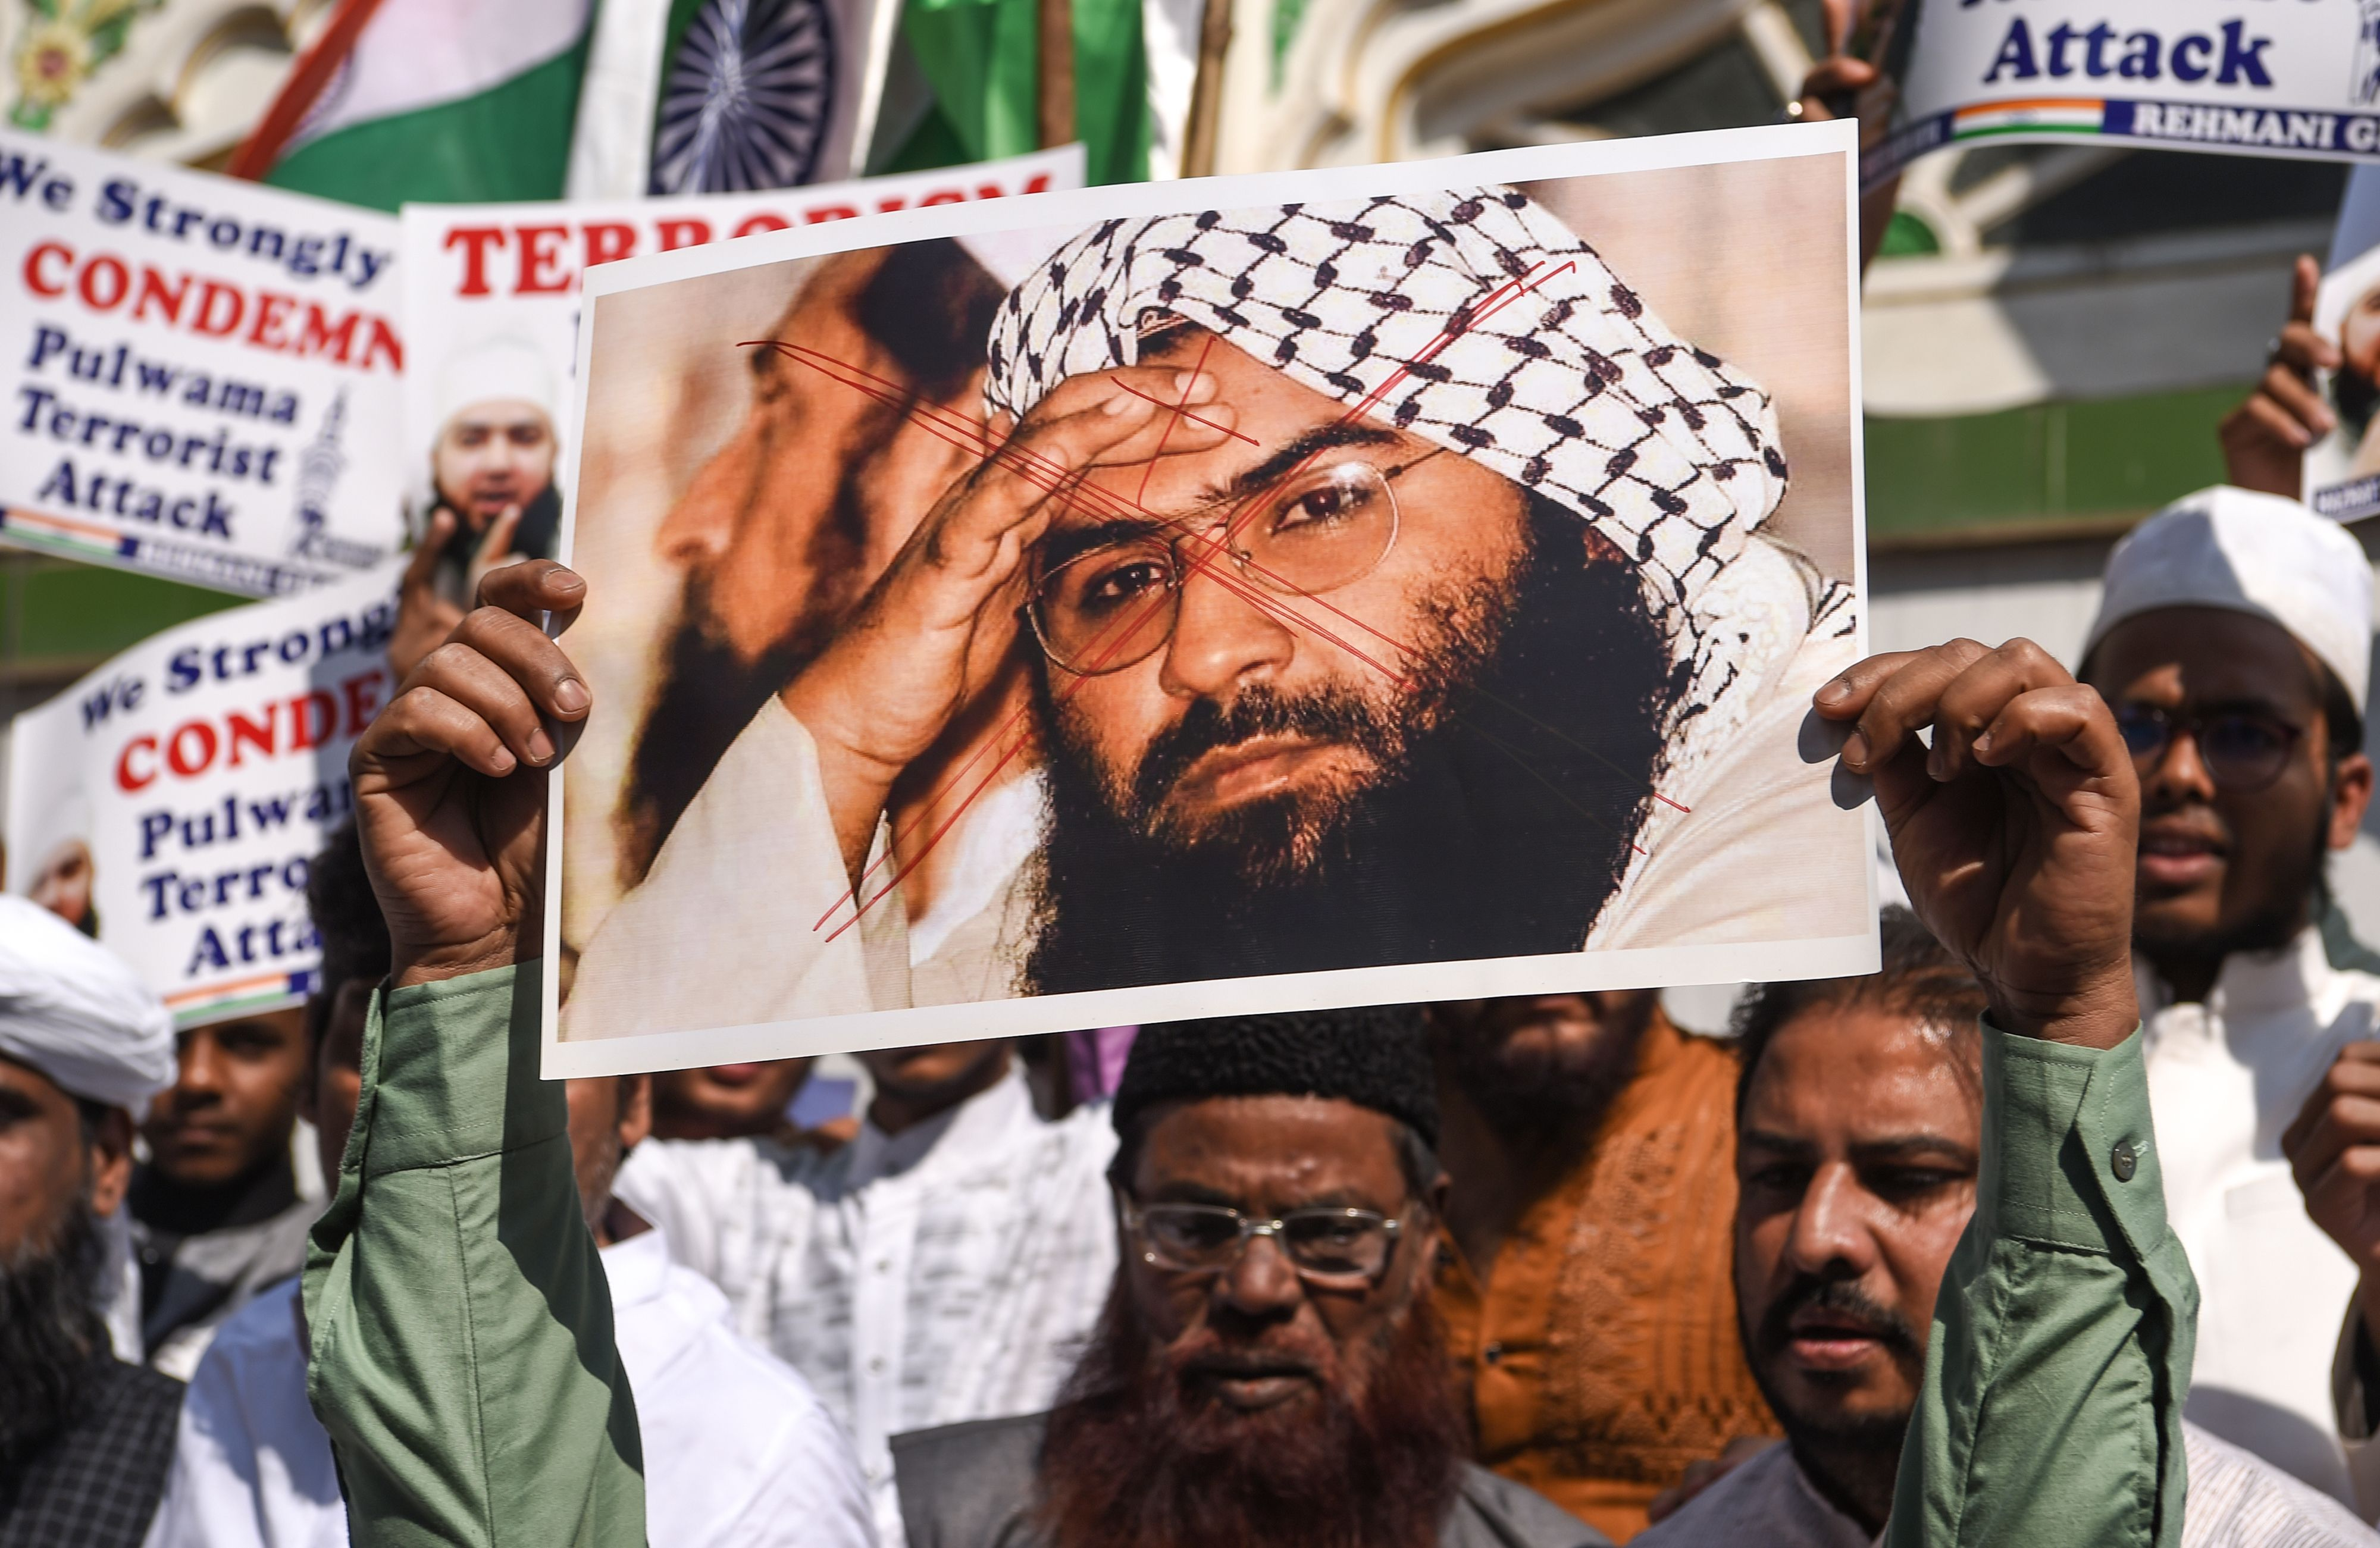 Indian Muslims hold a scratched photo of Jaish-e-Mohammad group chief, Maulana Masood Azhar. (Photo: INDRANIL MUKHERJEE/AFP/Getty Images)